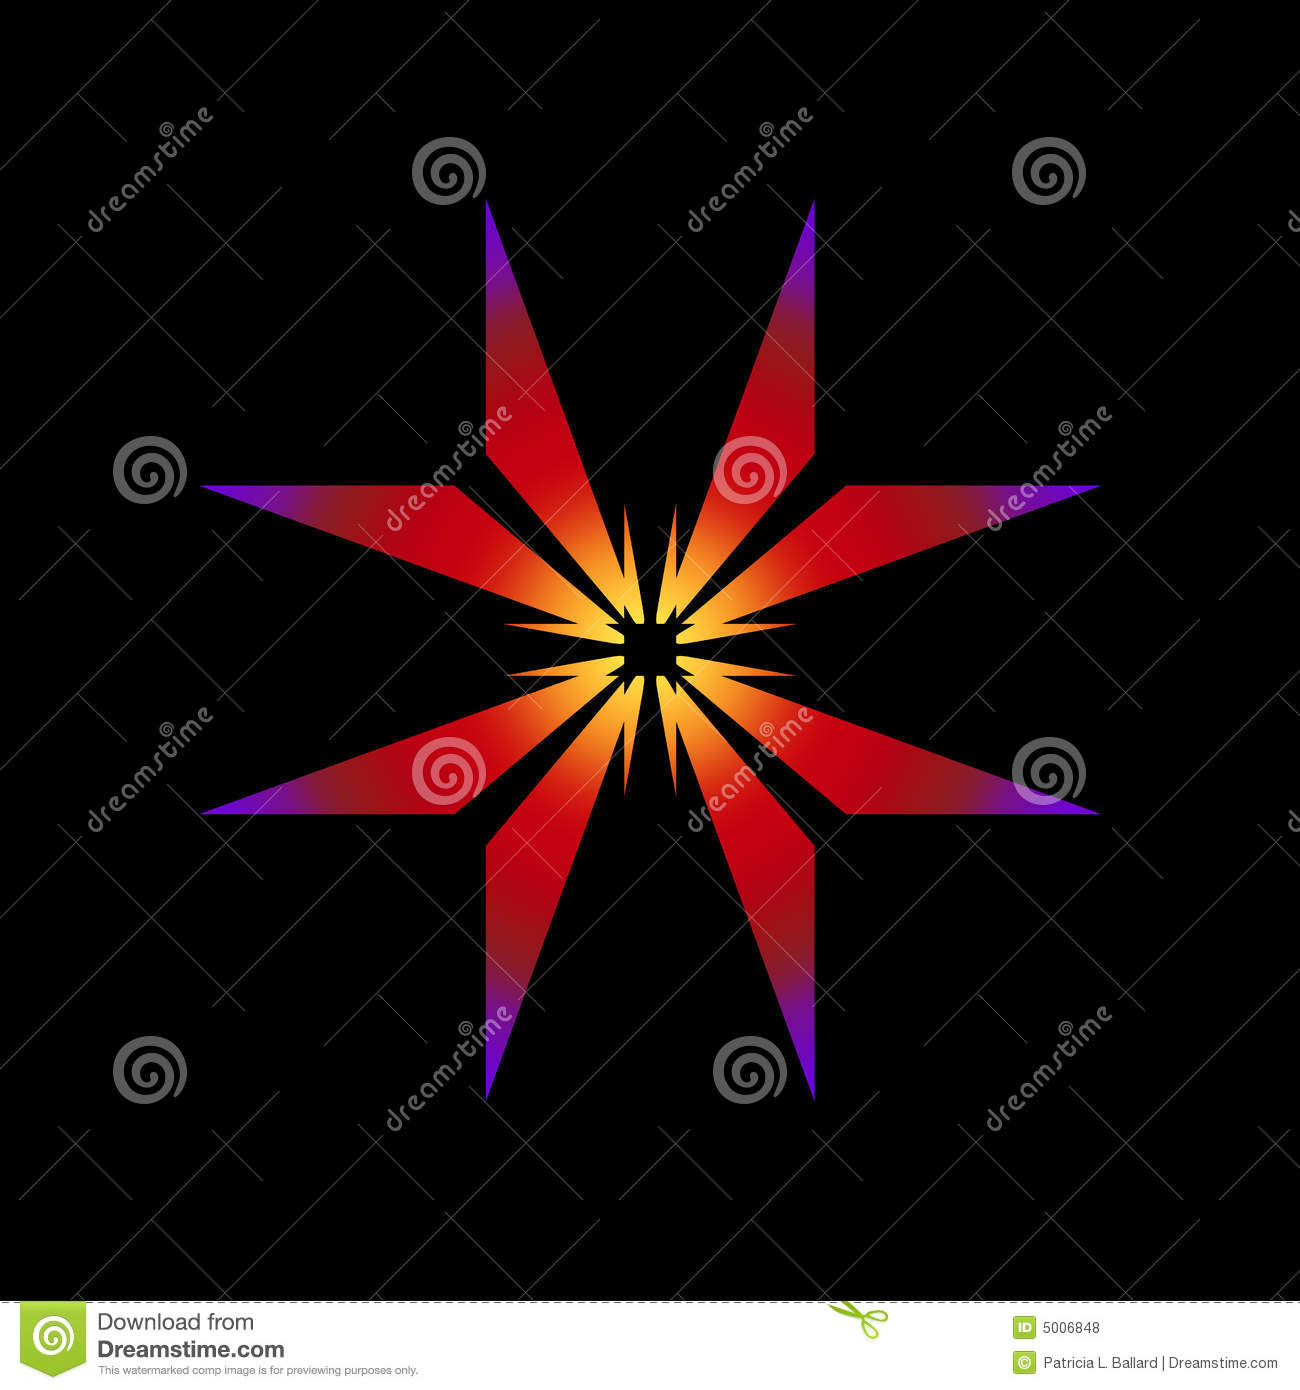 Glowing Star Abstract Royalty Free Stock Photos   Image  5006848